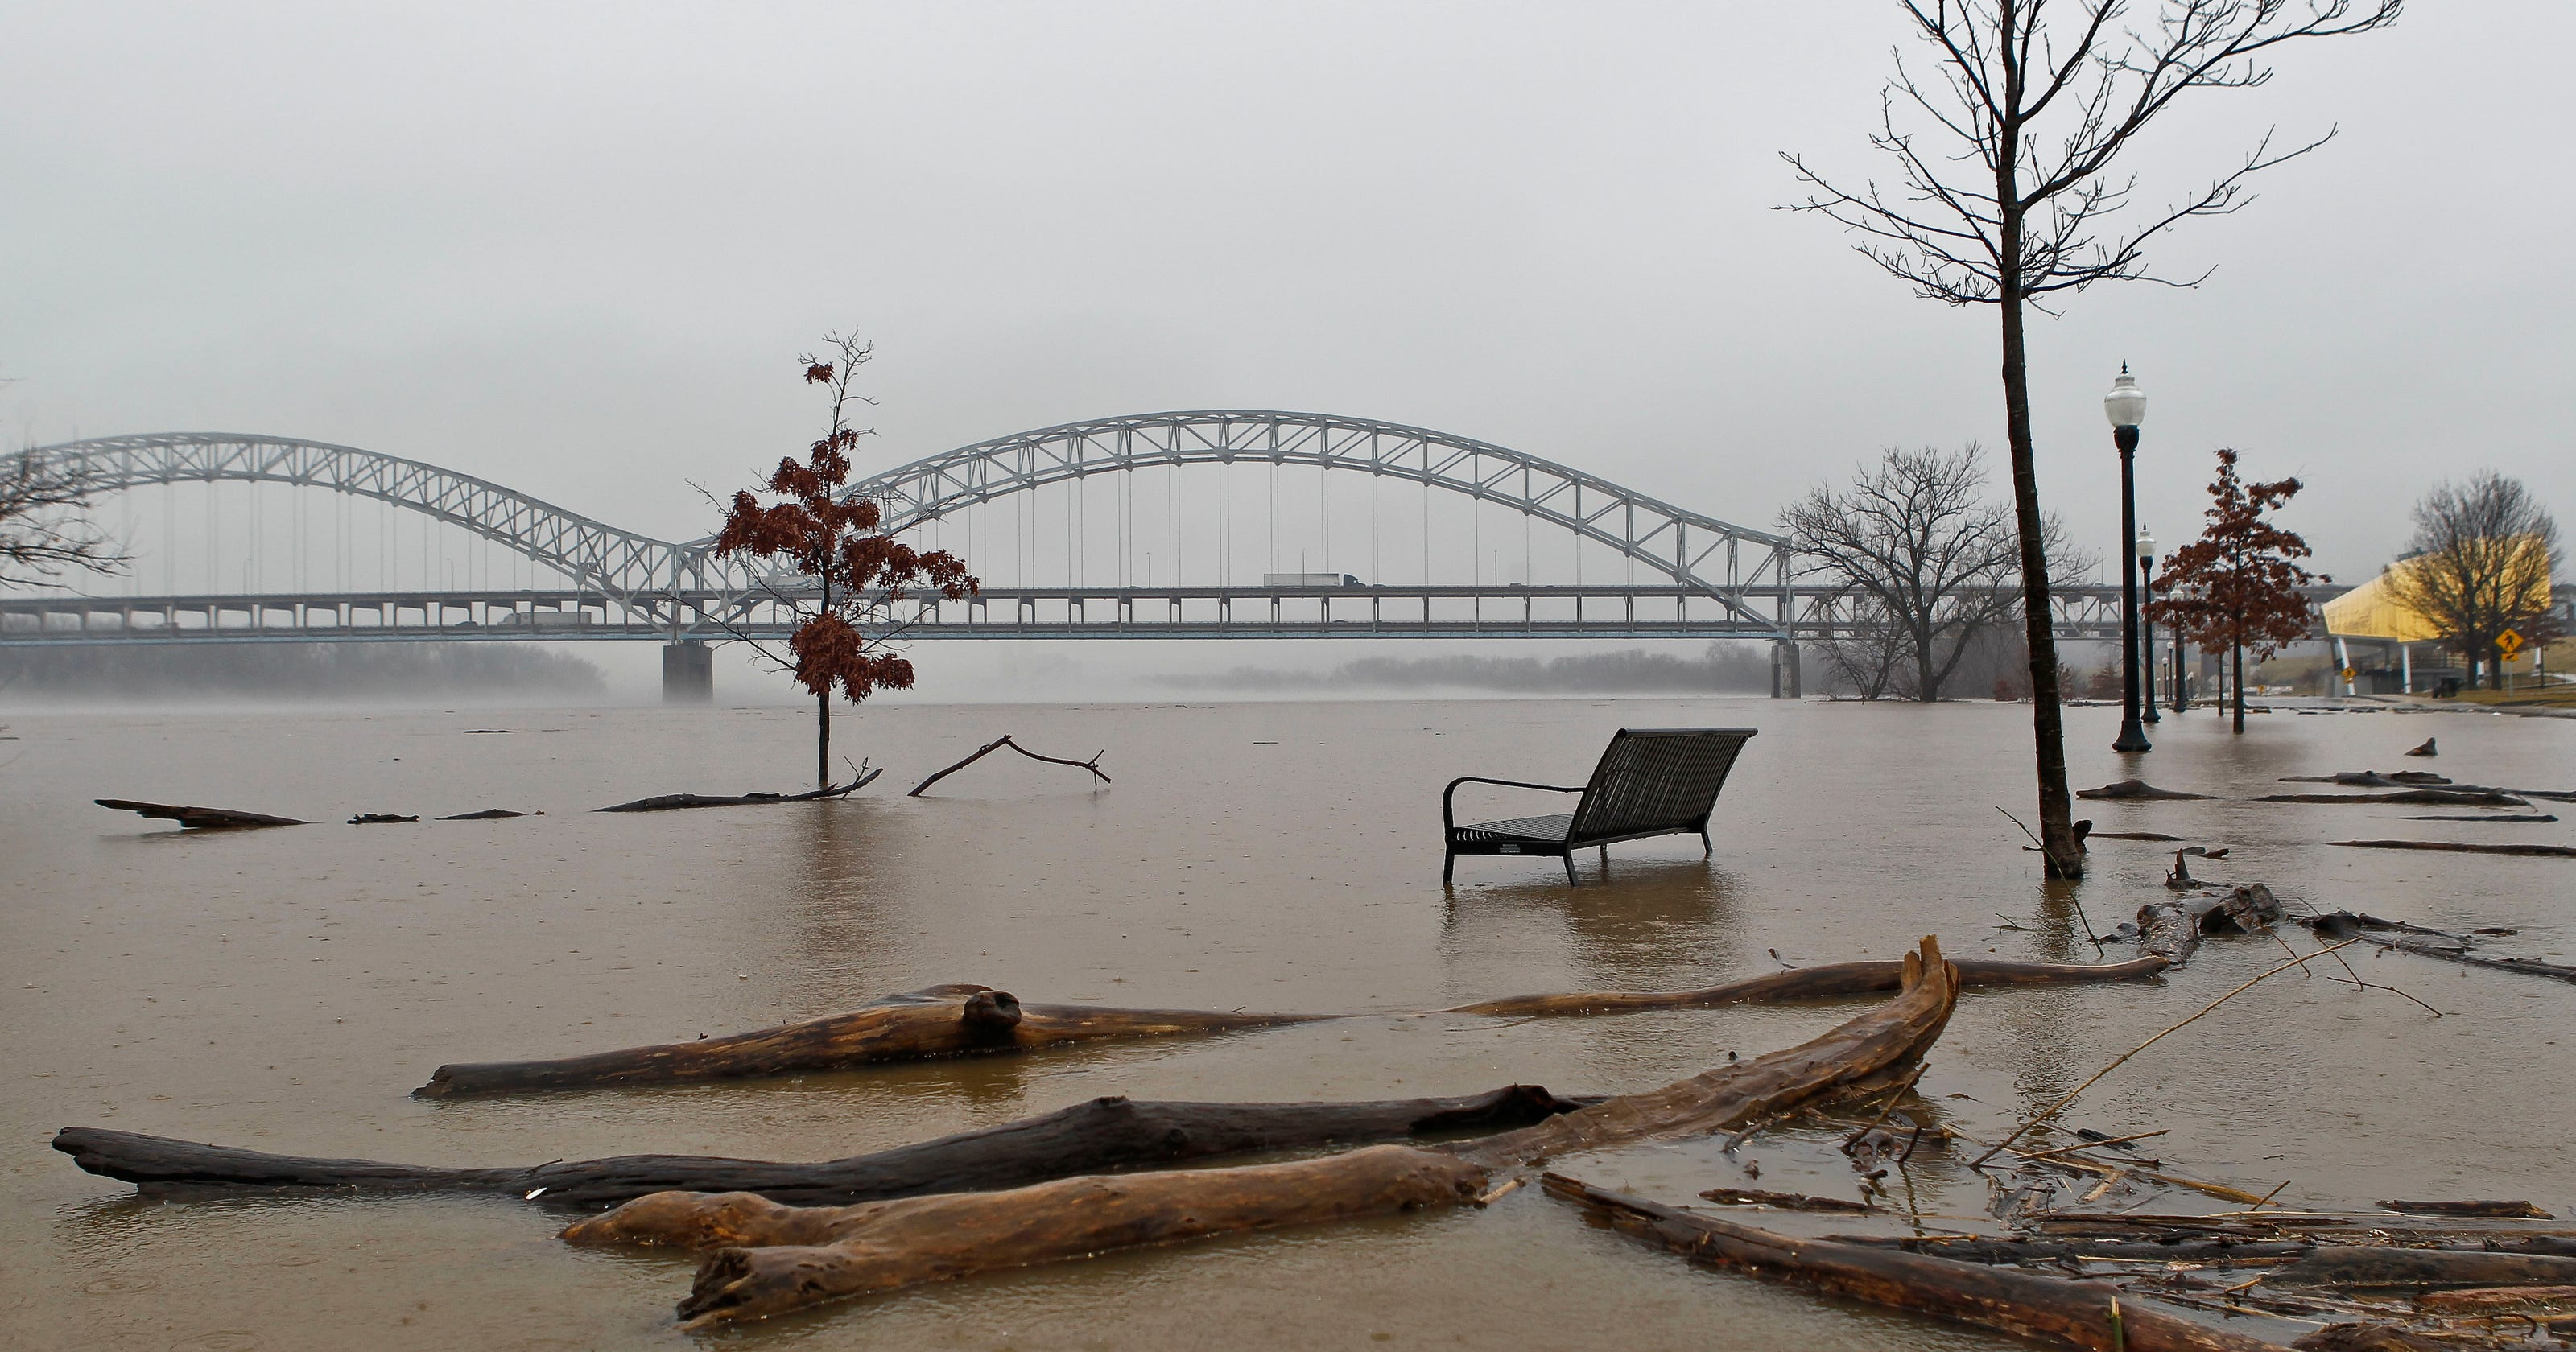 Ohio River again tops list for industrial pollution on rivers of canada map, rivers of the world map, rivers norway map, rivers spain map, rivers europe map, rivers of arizona map, rivers united states map, rivers in india map, north america river map, rivers of australia map, major us river map, rivers italy map, rivers of alabama map, rivers of africa map, rivers in florida map, rivers of colorado map, rivers in russia map, rivers on a map, rivers houston map, rivers of asia map,